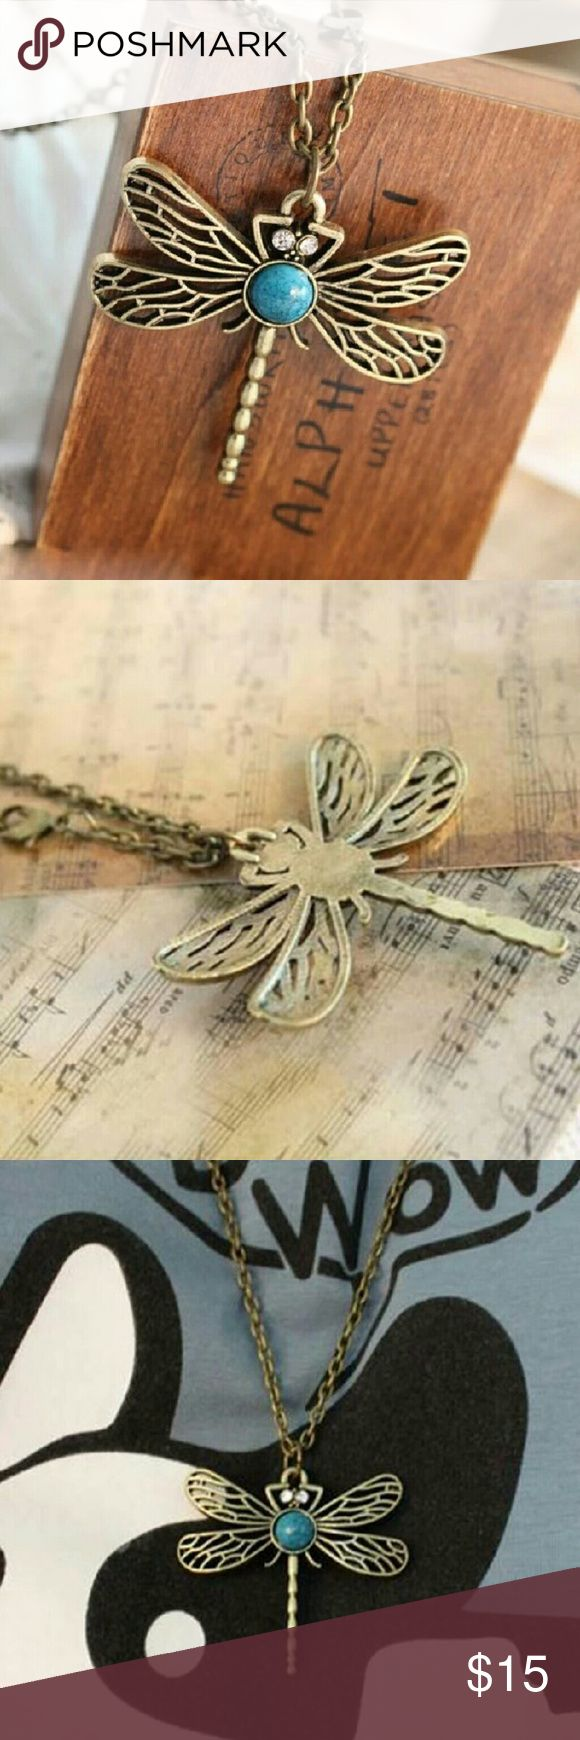 Retro Dragonfly Necklace Retro Style Bronze Dragonfly Long Chain Sweater Necklace Pendant Accessories